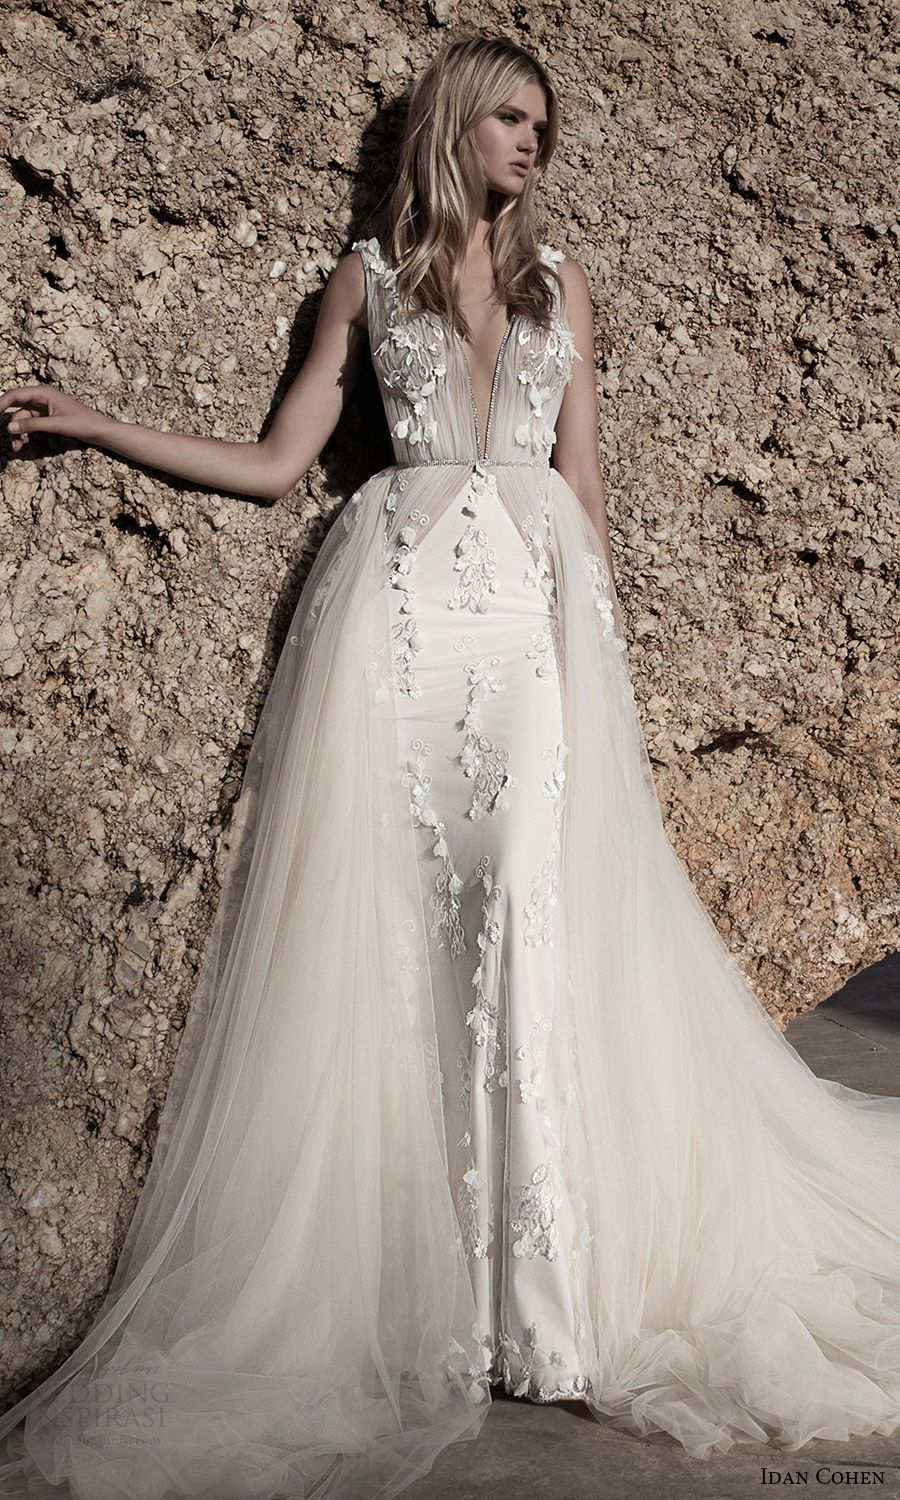 Previously owned wedding dresses  Idan Cohen Wedding Dresses u  Bridal PreCollection  Wedding